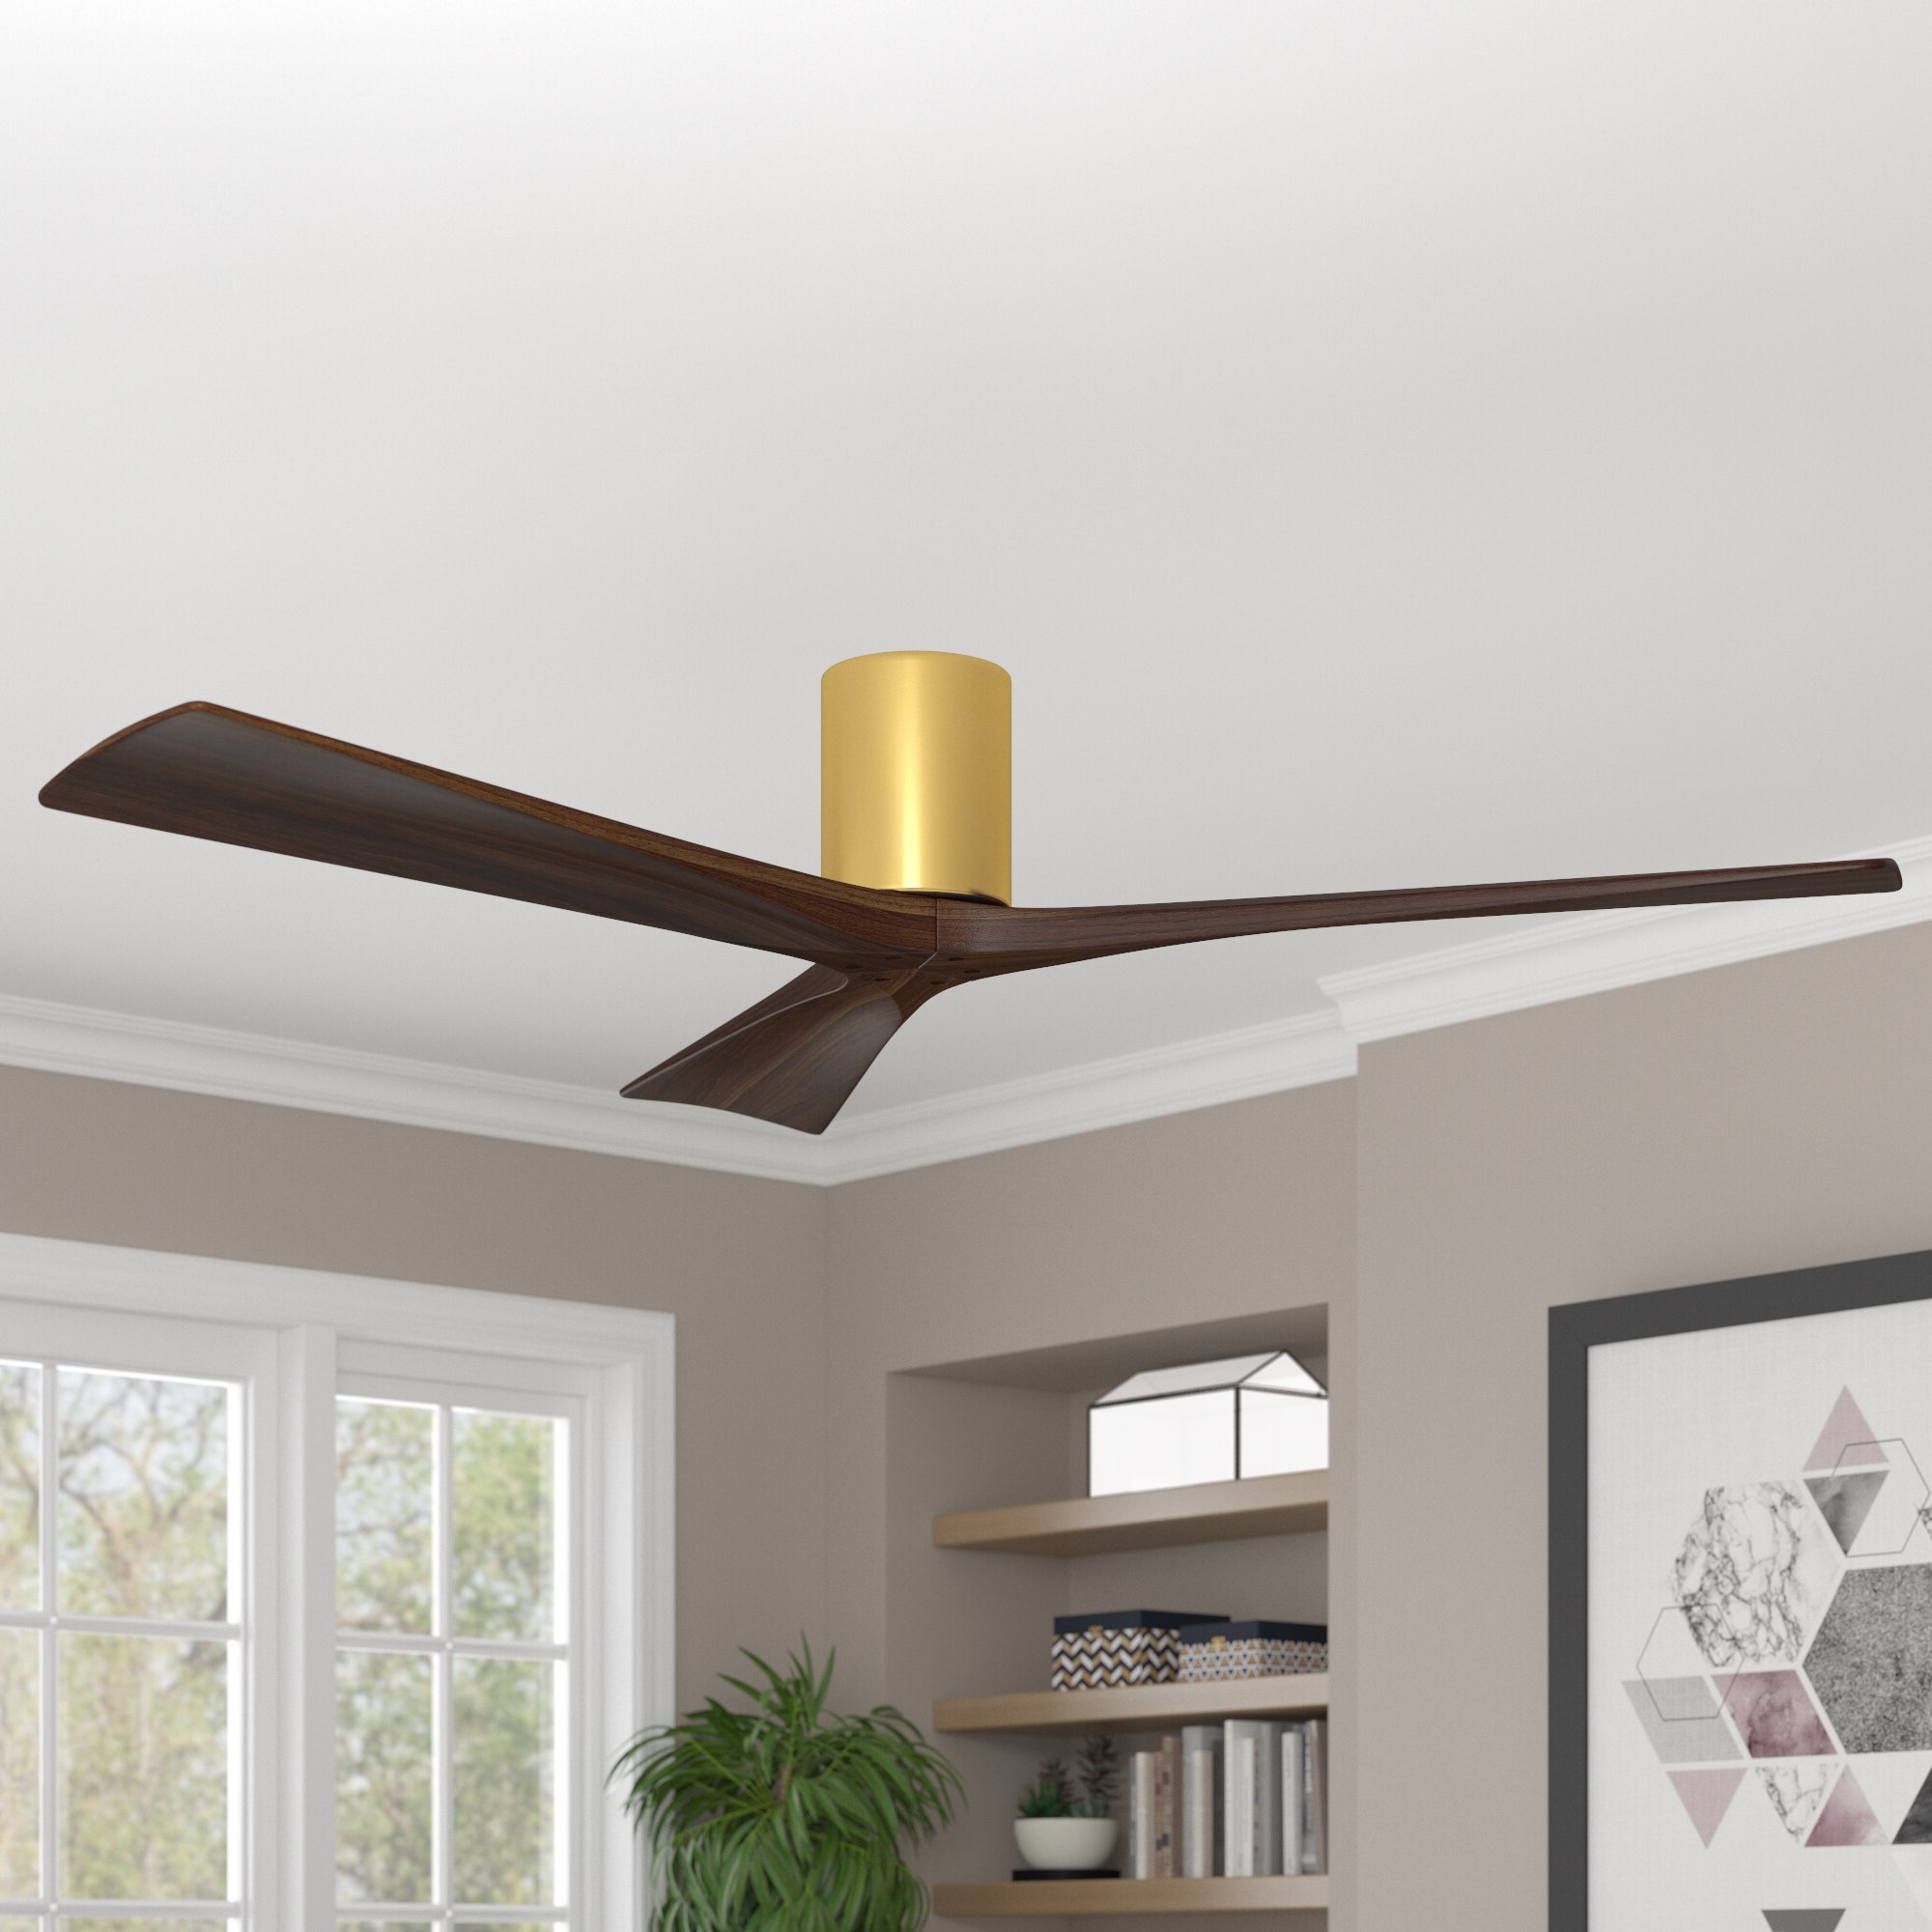 "2019 Hedin 3 Blade Hugger Ceiling Fans Pertaining To 60"" Rosalind 3 Blade Hugger Ceiling Fan With Wall Remote (View 12 of 20)"